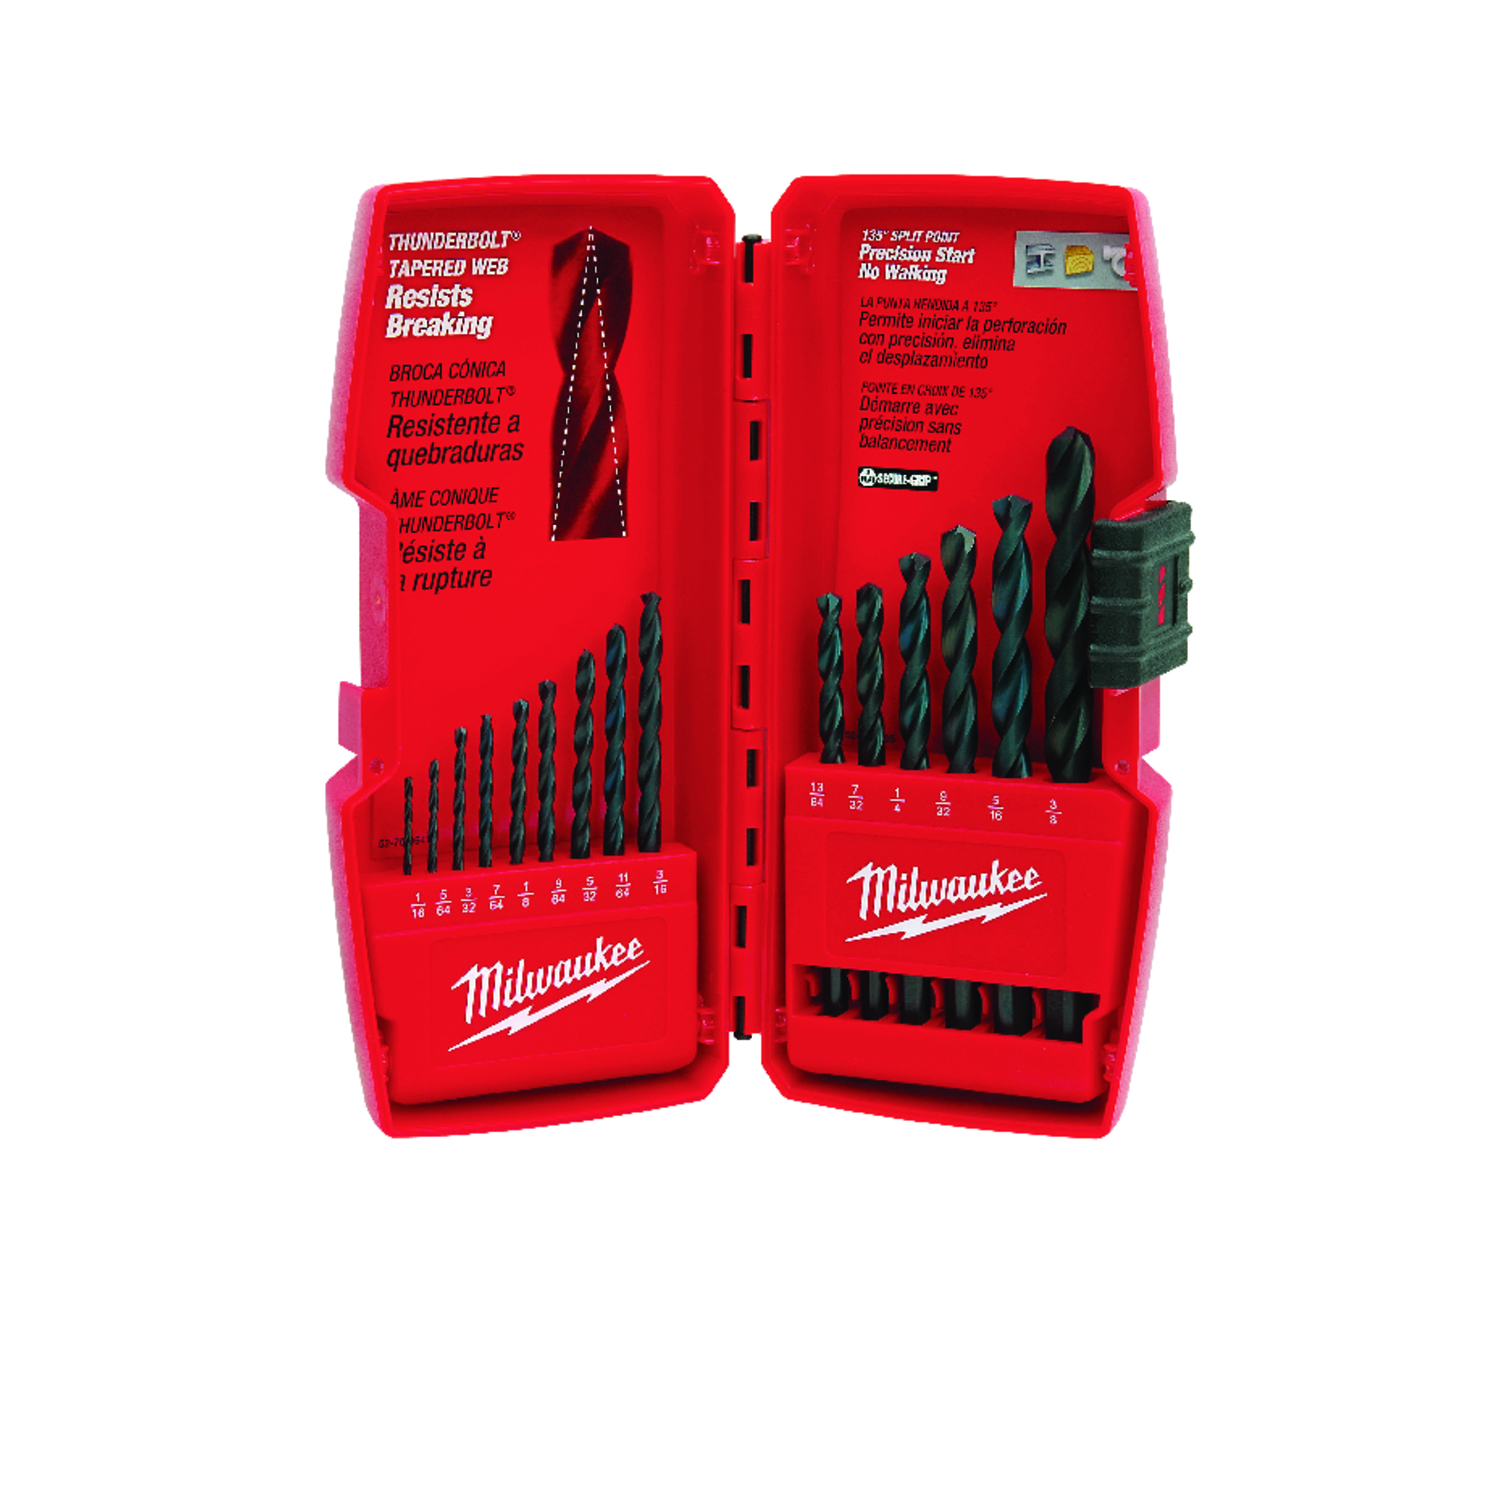 Milwaukee  THUNDERBOLT  Assorted in. Dia. Black Oxide  Drill Bit  15 pc. 3-Flat Shank  3/8 in.